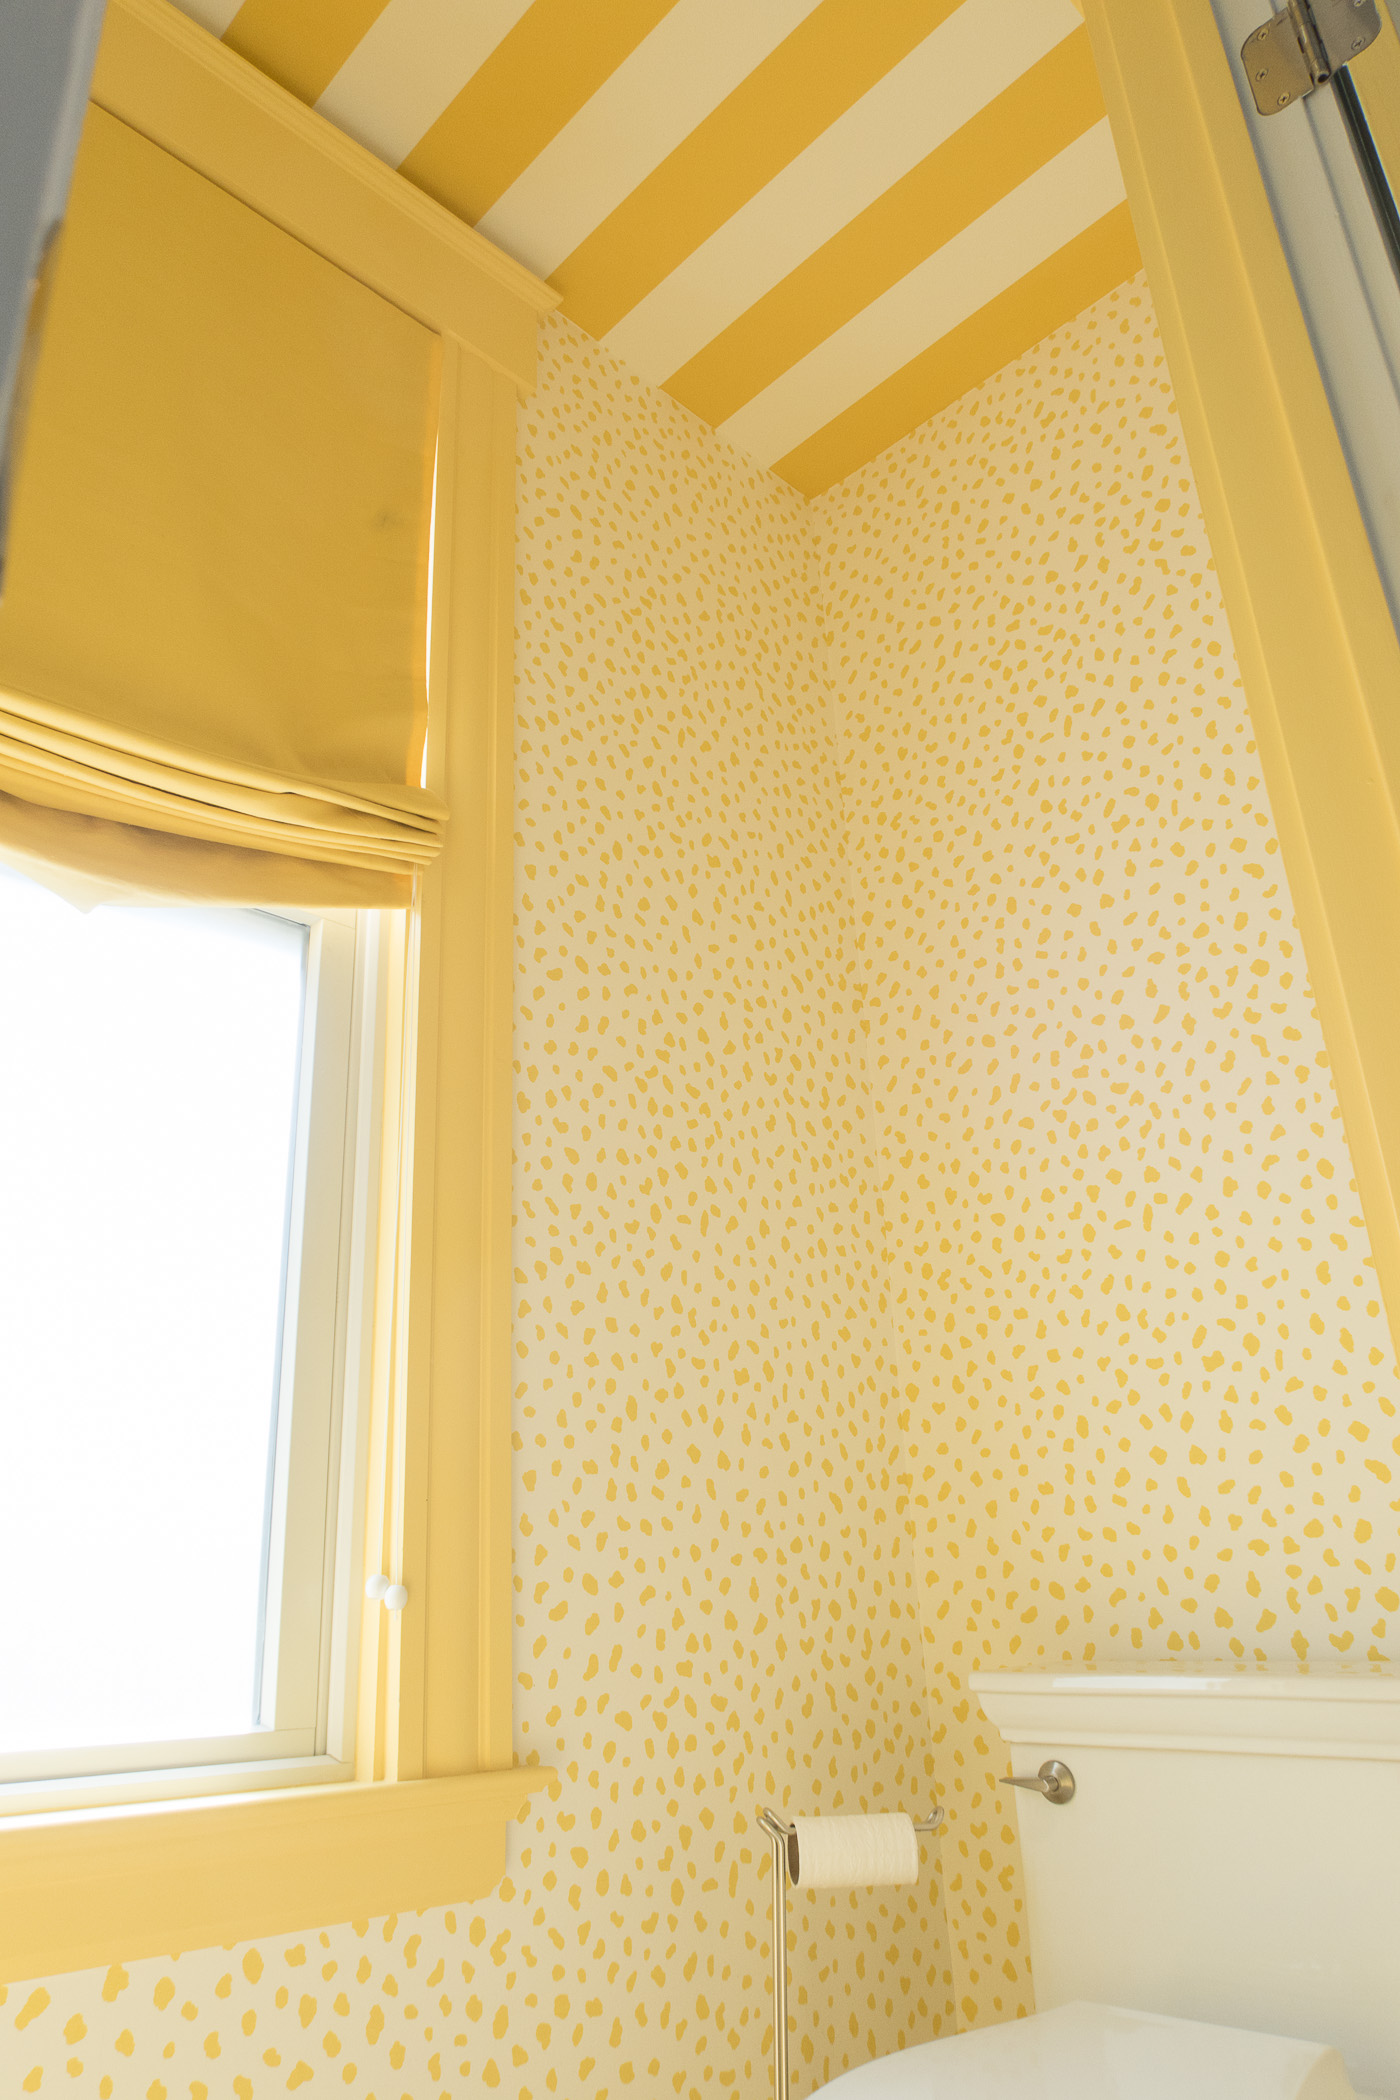 Yellow and White Whimsical Bathroom